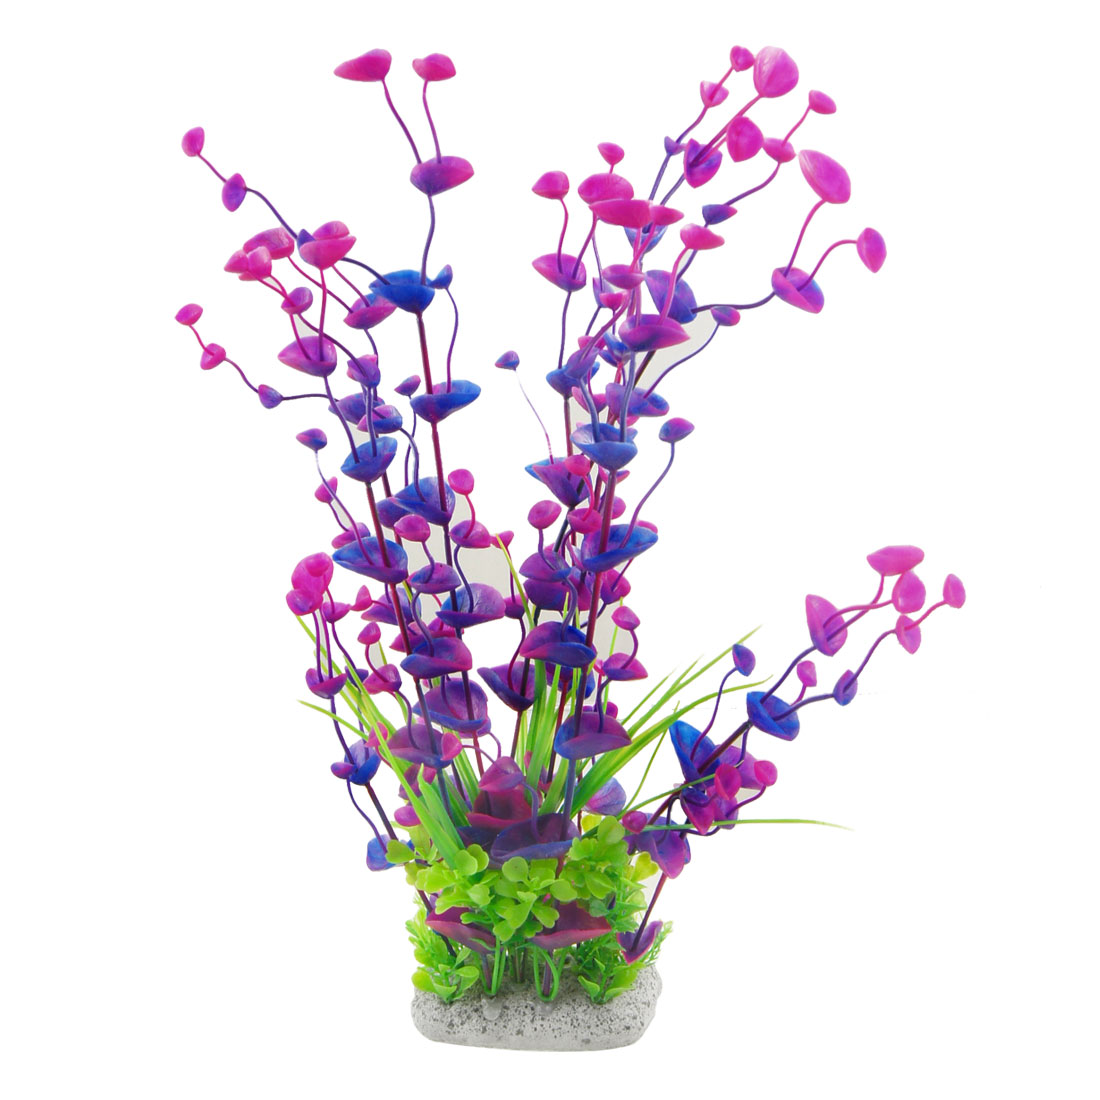 Fish-Tank-15-3-Emulational-Water-Plant-Decor-Purple-Blue